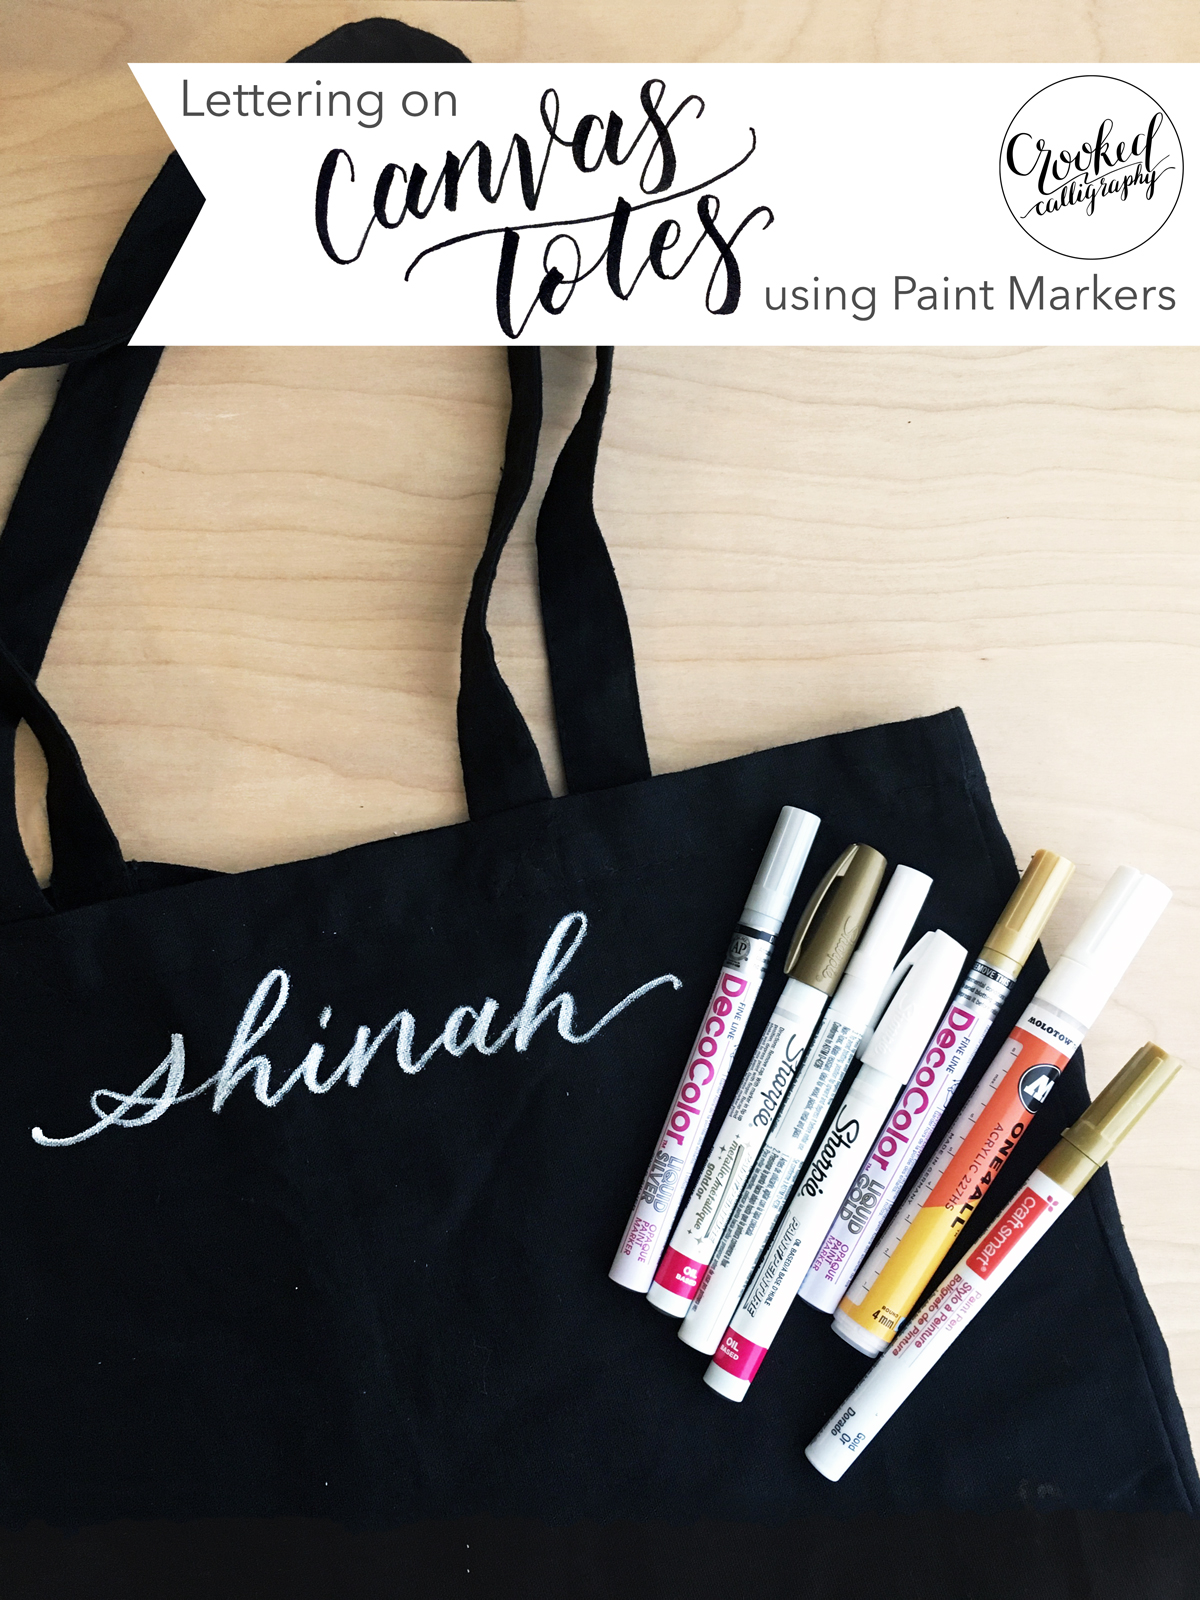 shinah reviews the best paint markers for lettering on canvas totes